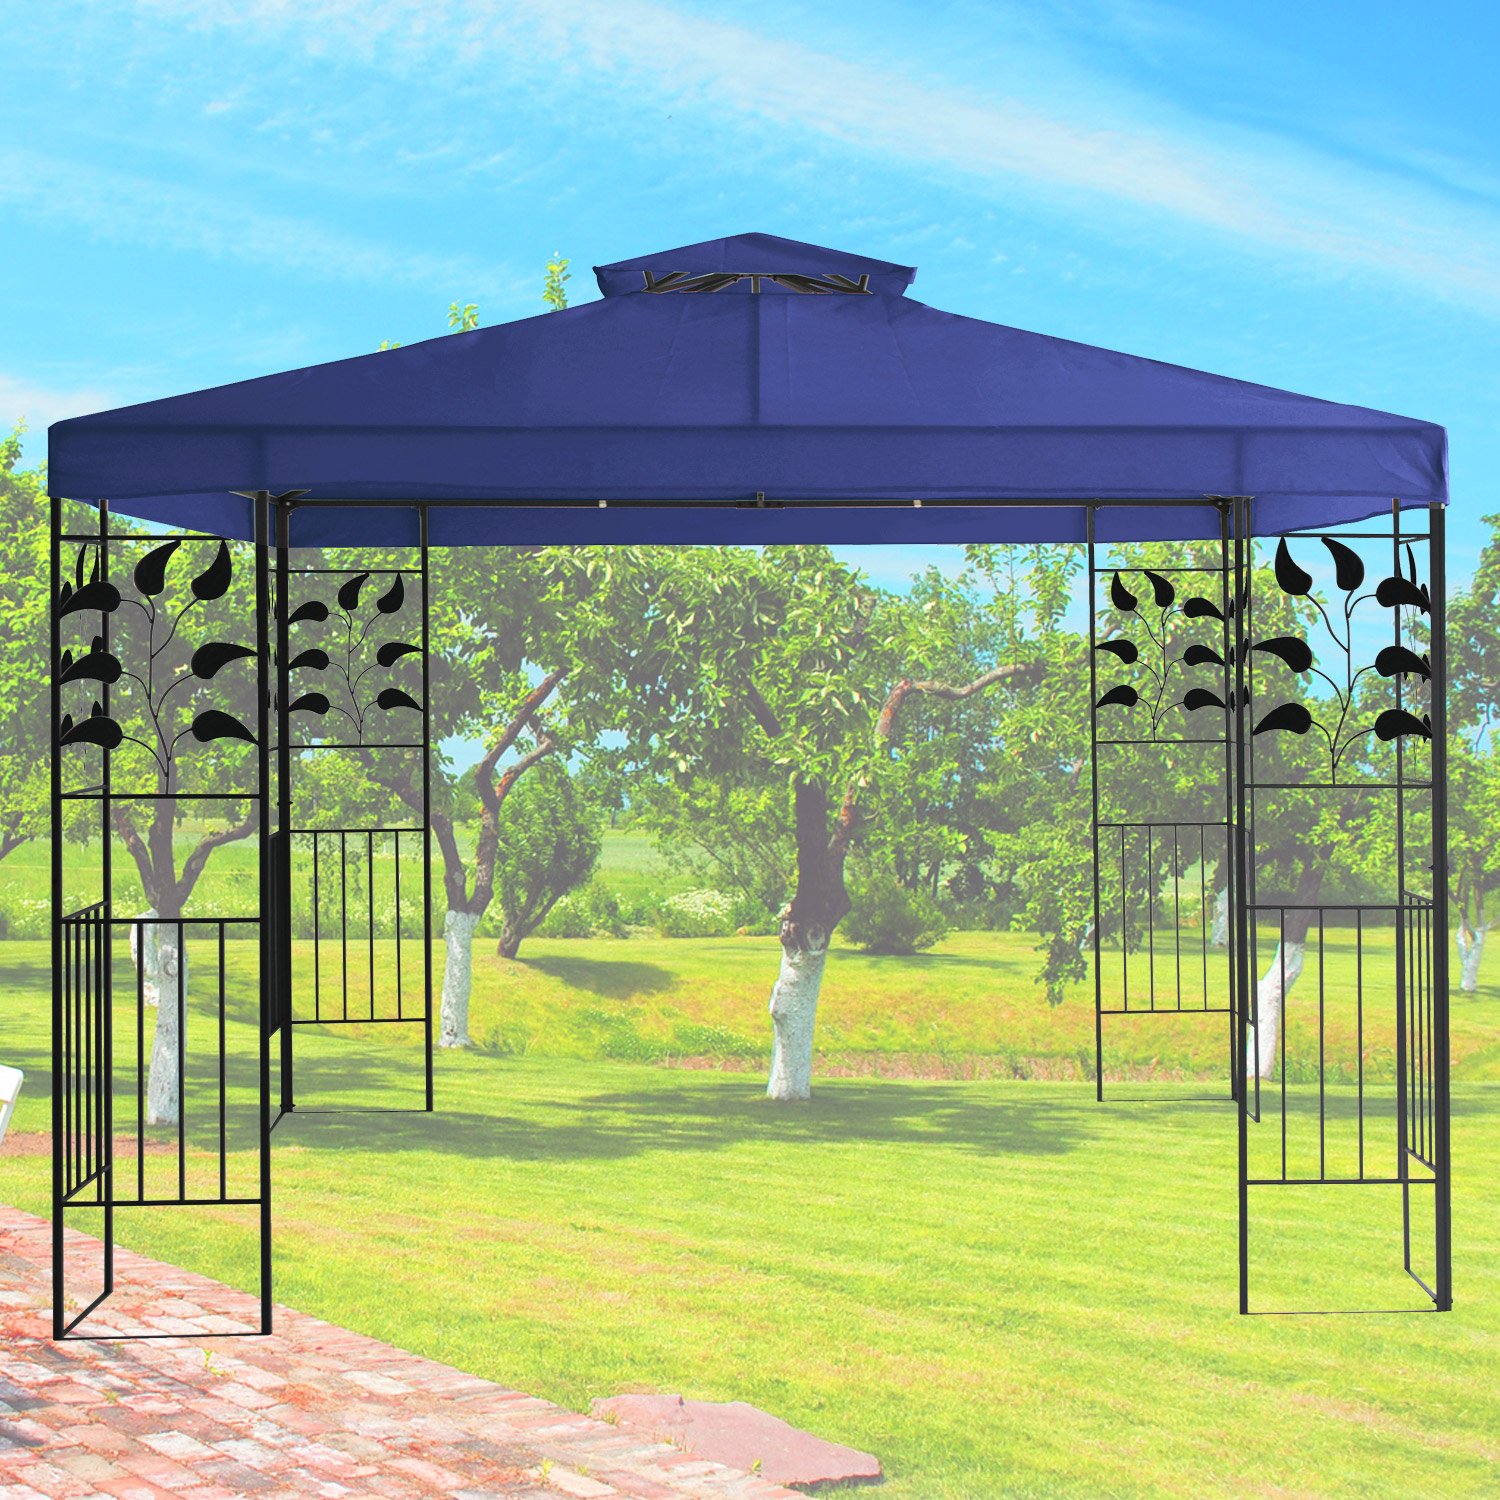 pavillons gazebos. Black Bedroom Furniture Sets. Home Design Ideas